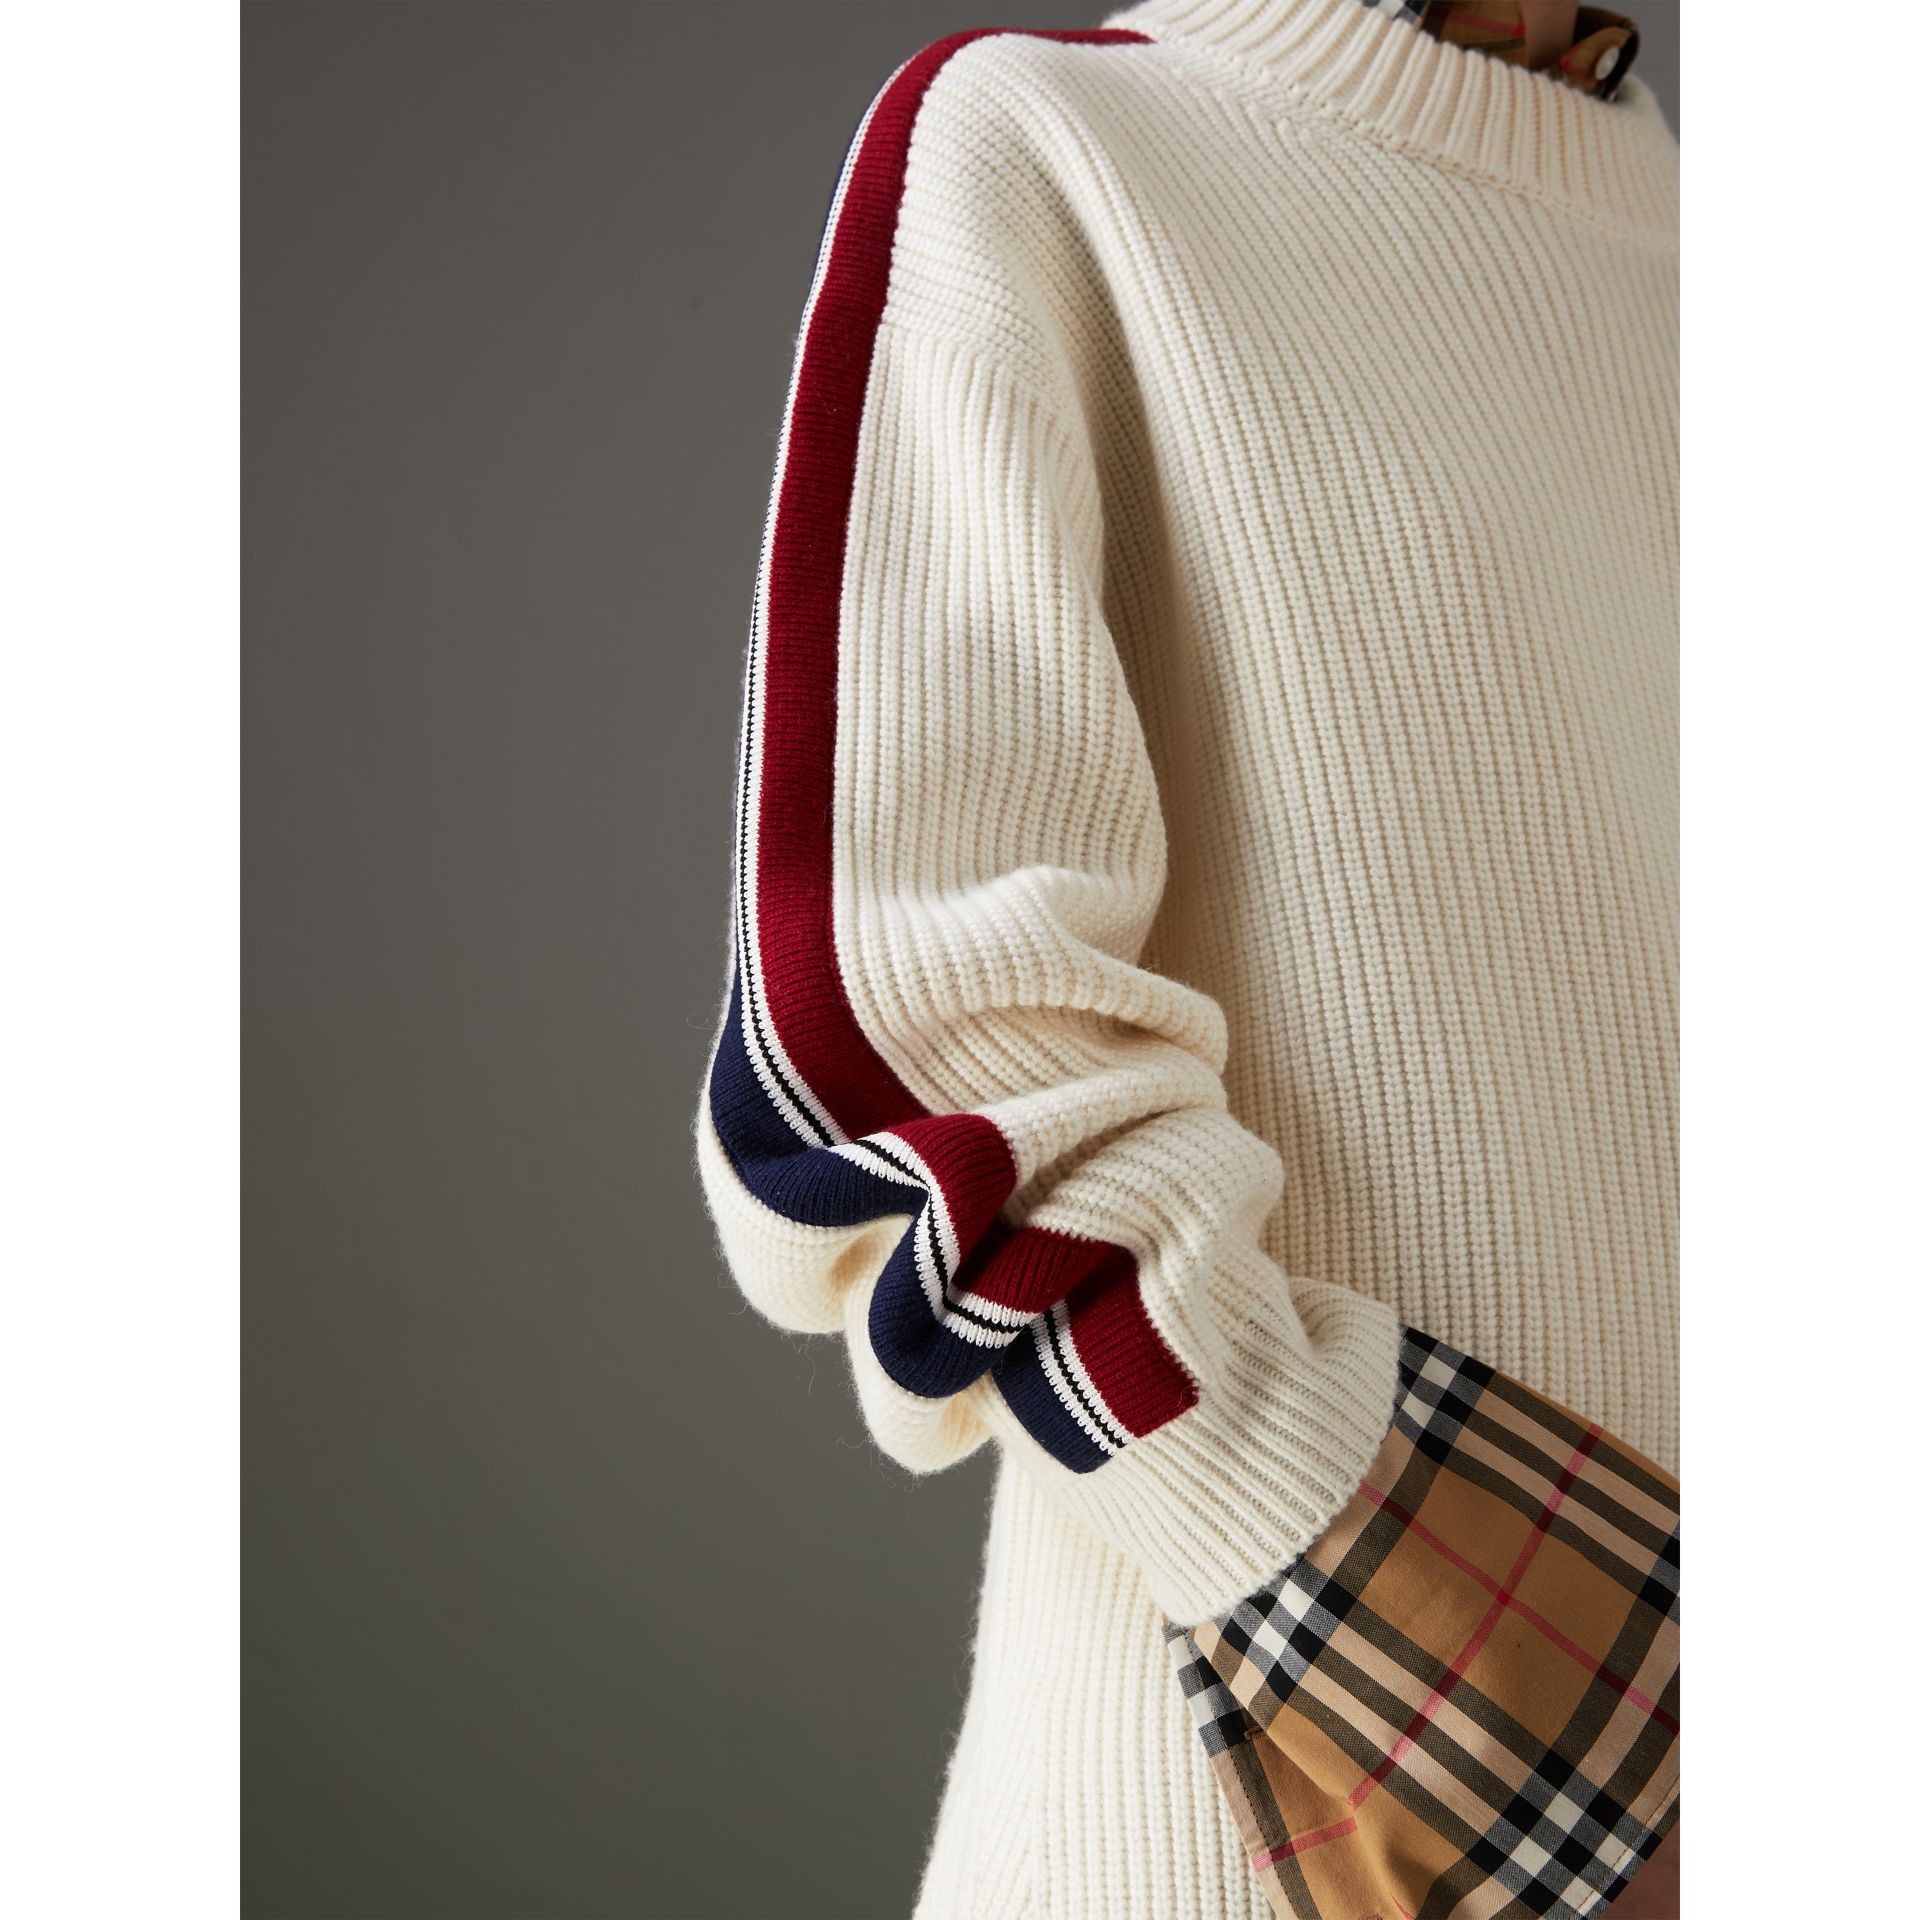 Stripe Detail Wool Cashmere Oversized Sweater in Natural White - Women | Burberry - gallery image 1